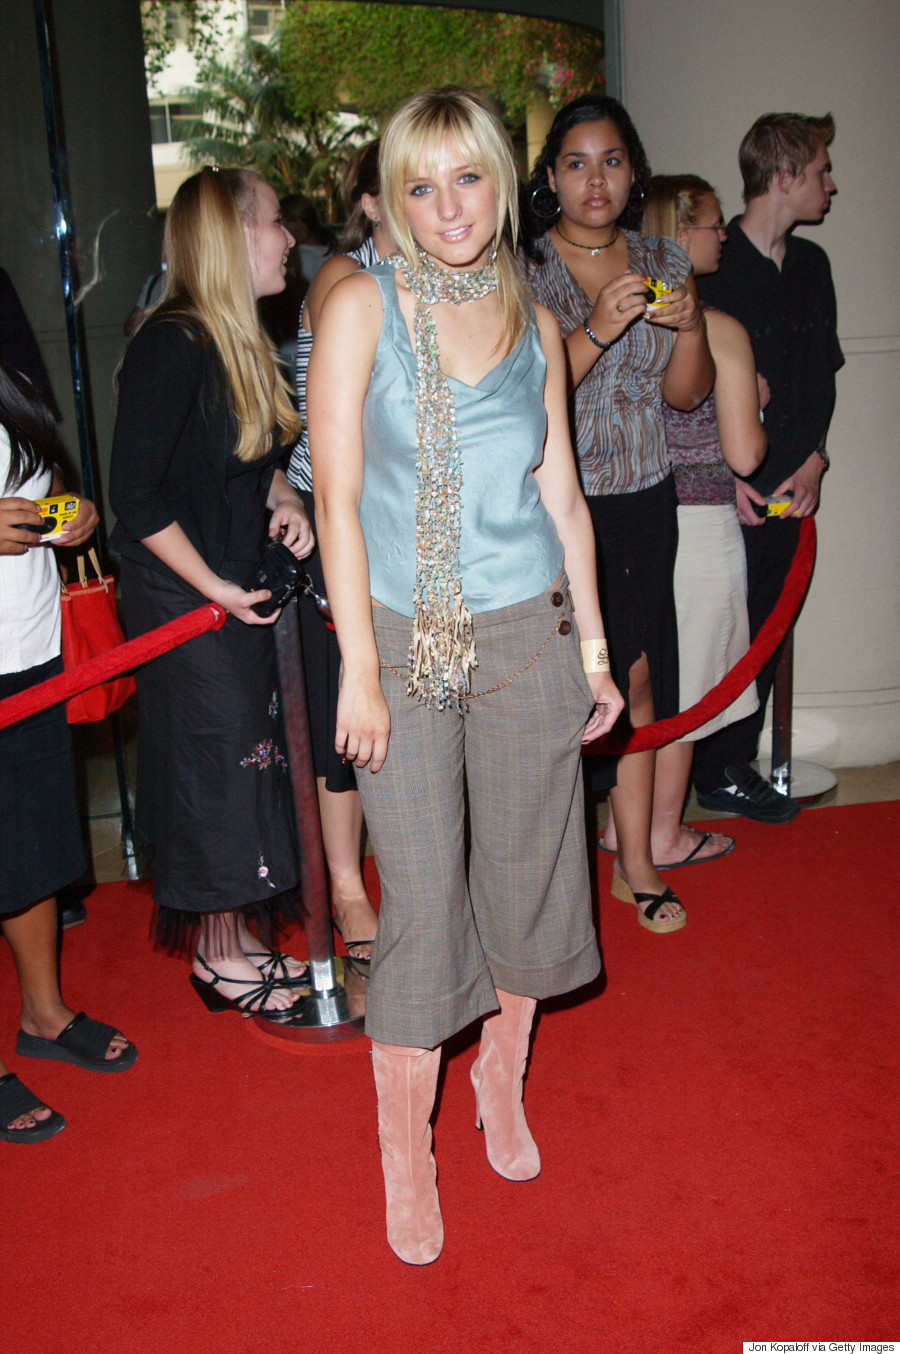 2000s Fashion Trends The u0026#39;Going Outu0026#39; Clothes We Used To Wear | HuffPost Canada